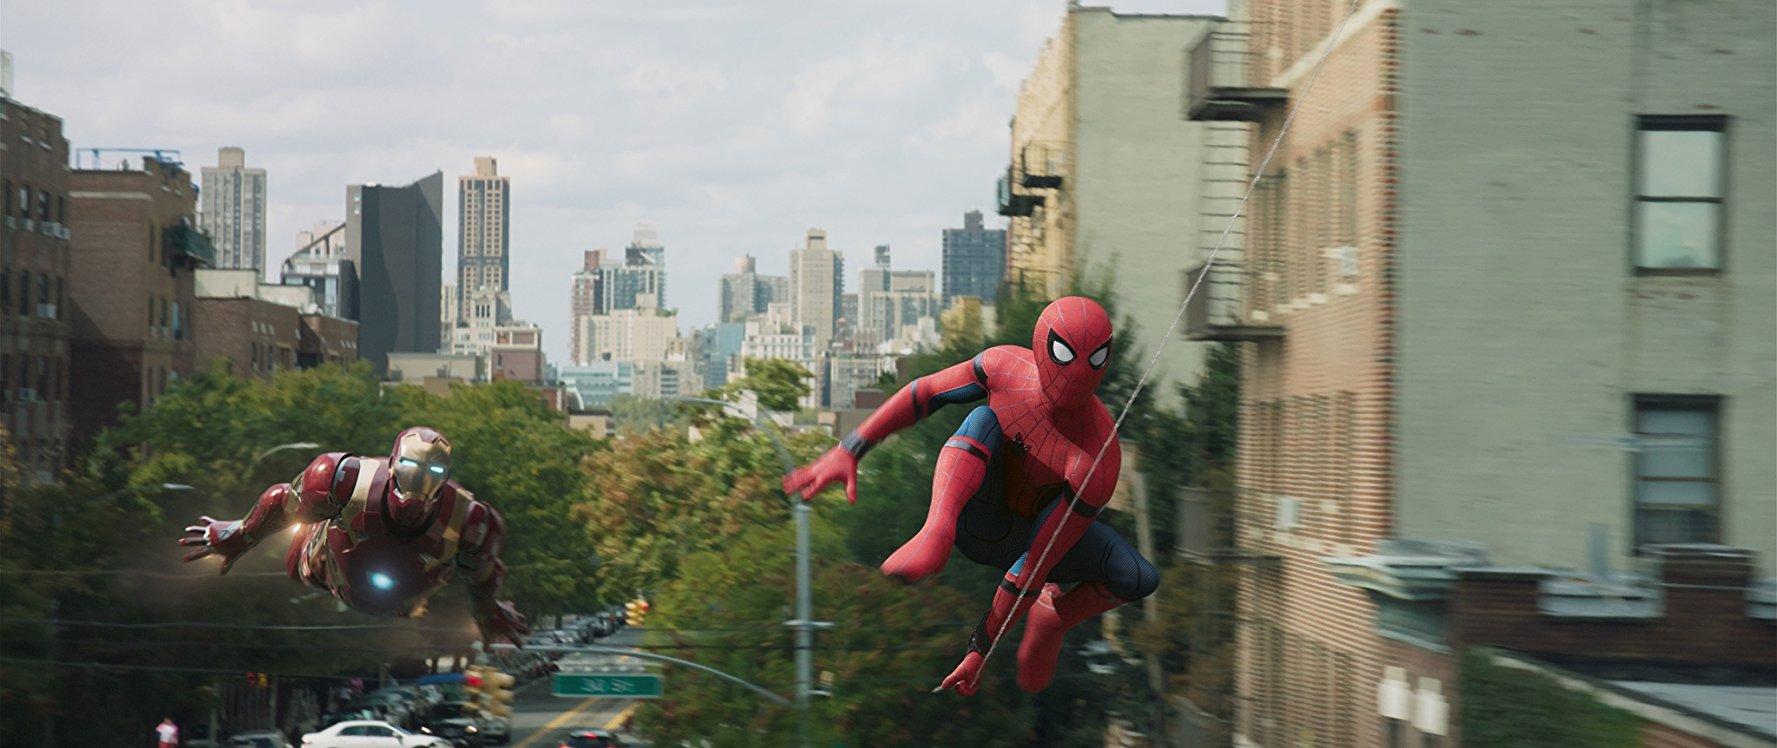 Spider-Man and Iron Man in New York